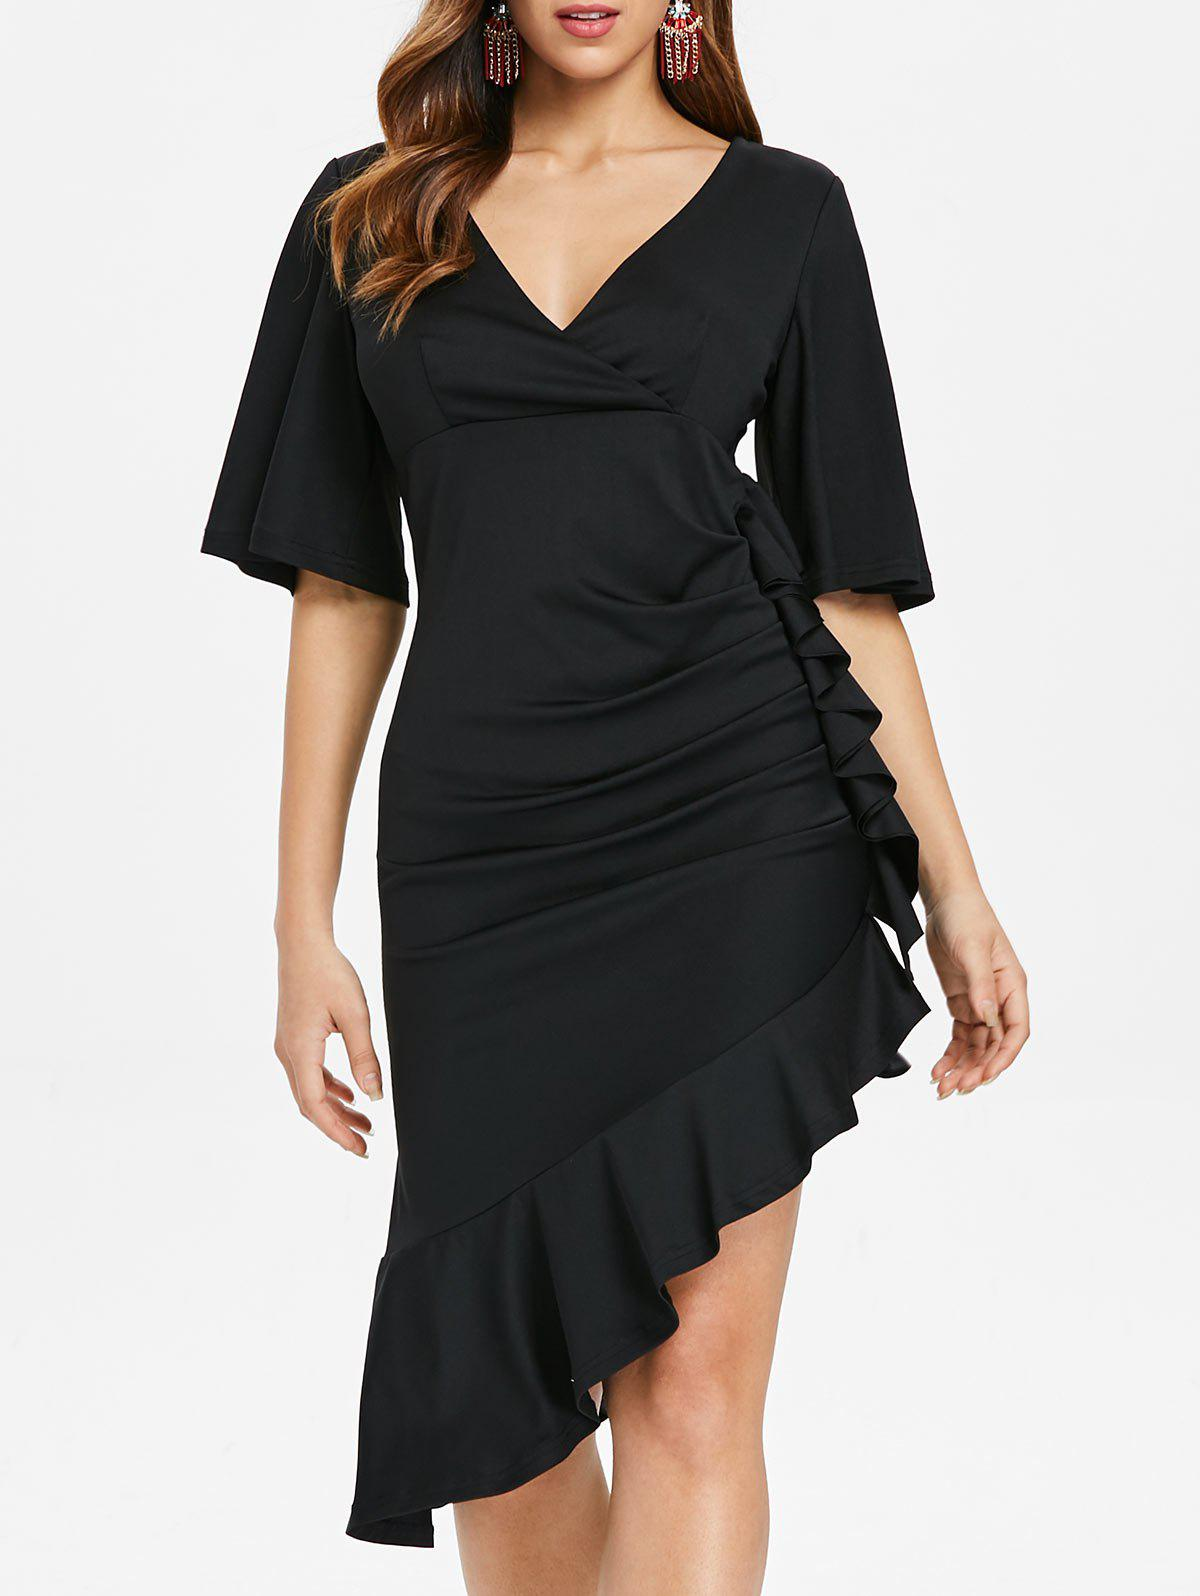 Trendy Ruffle Trim Empire Waist Dress